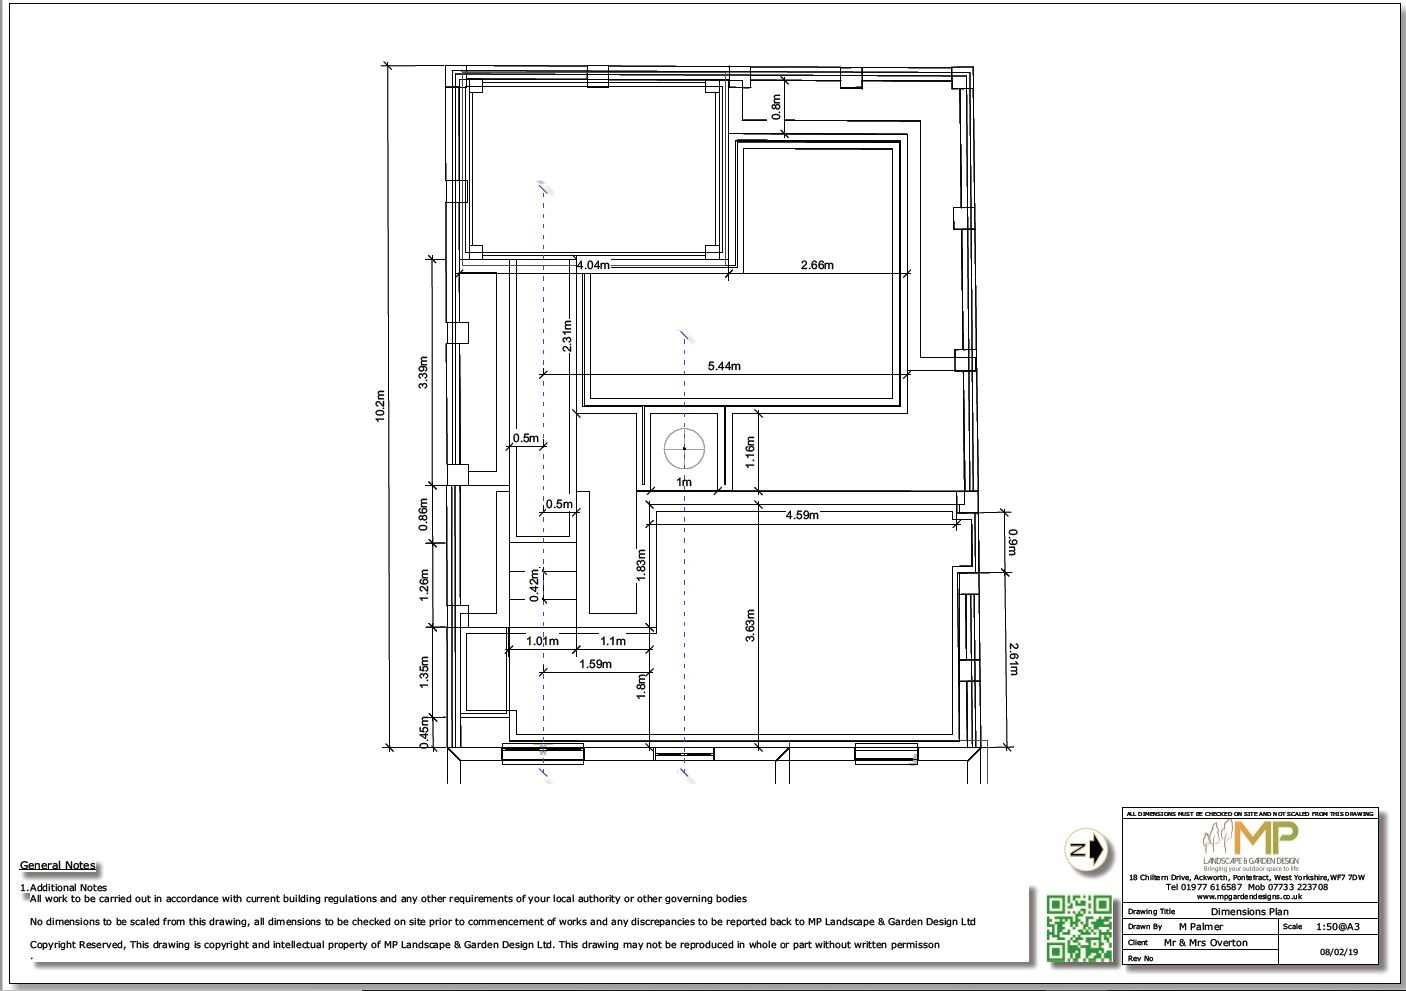 Dimensions plan for a property in Pontefract.